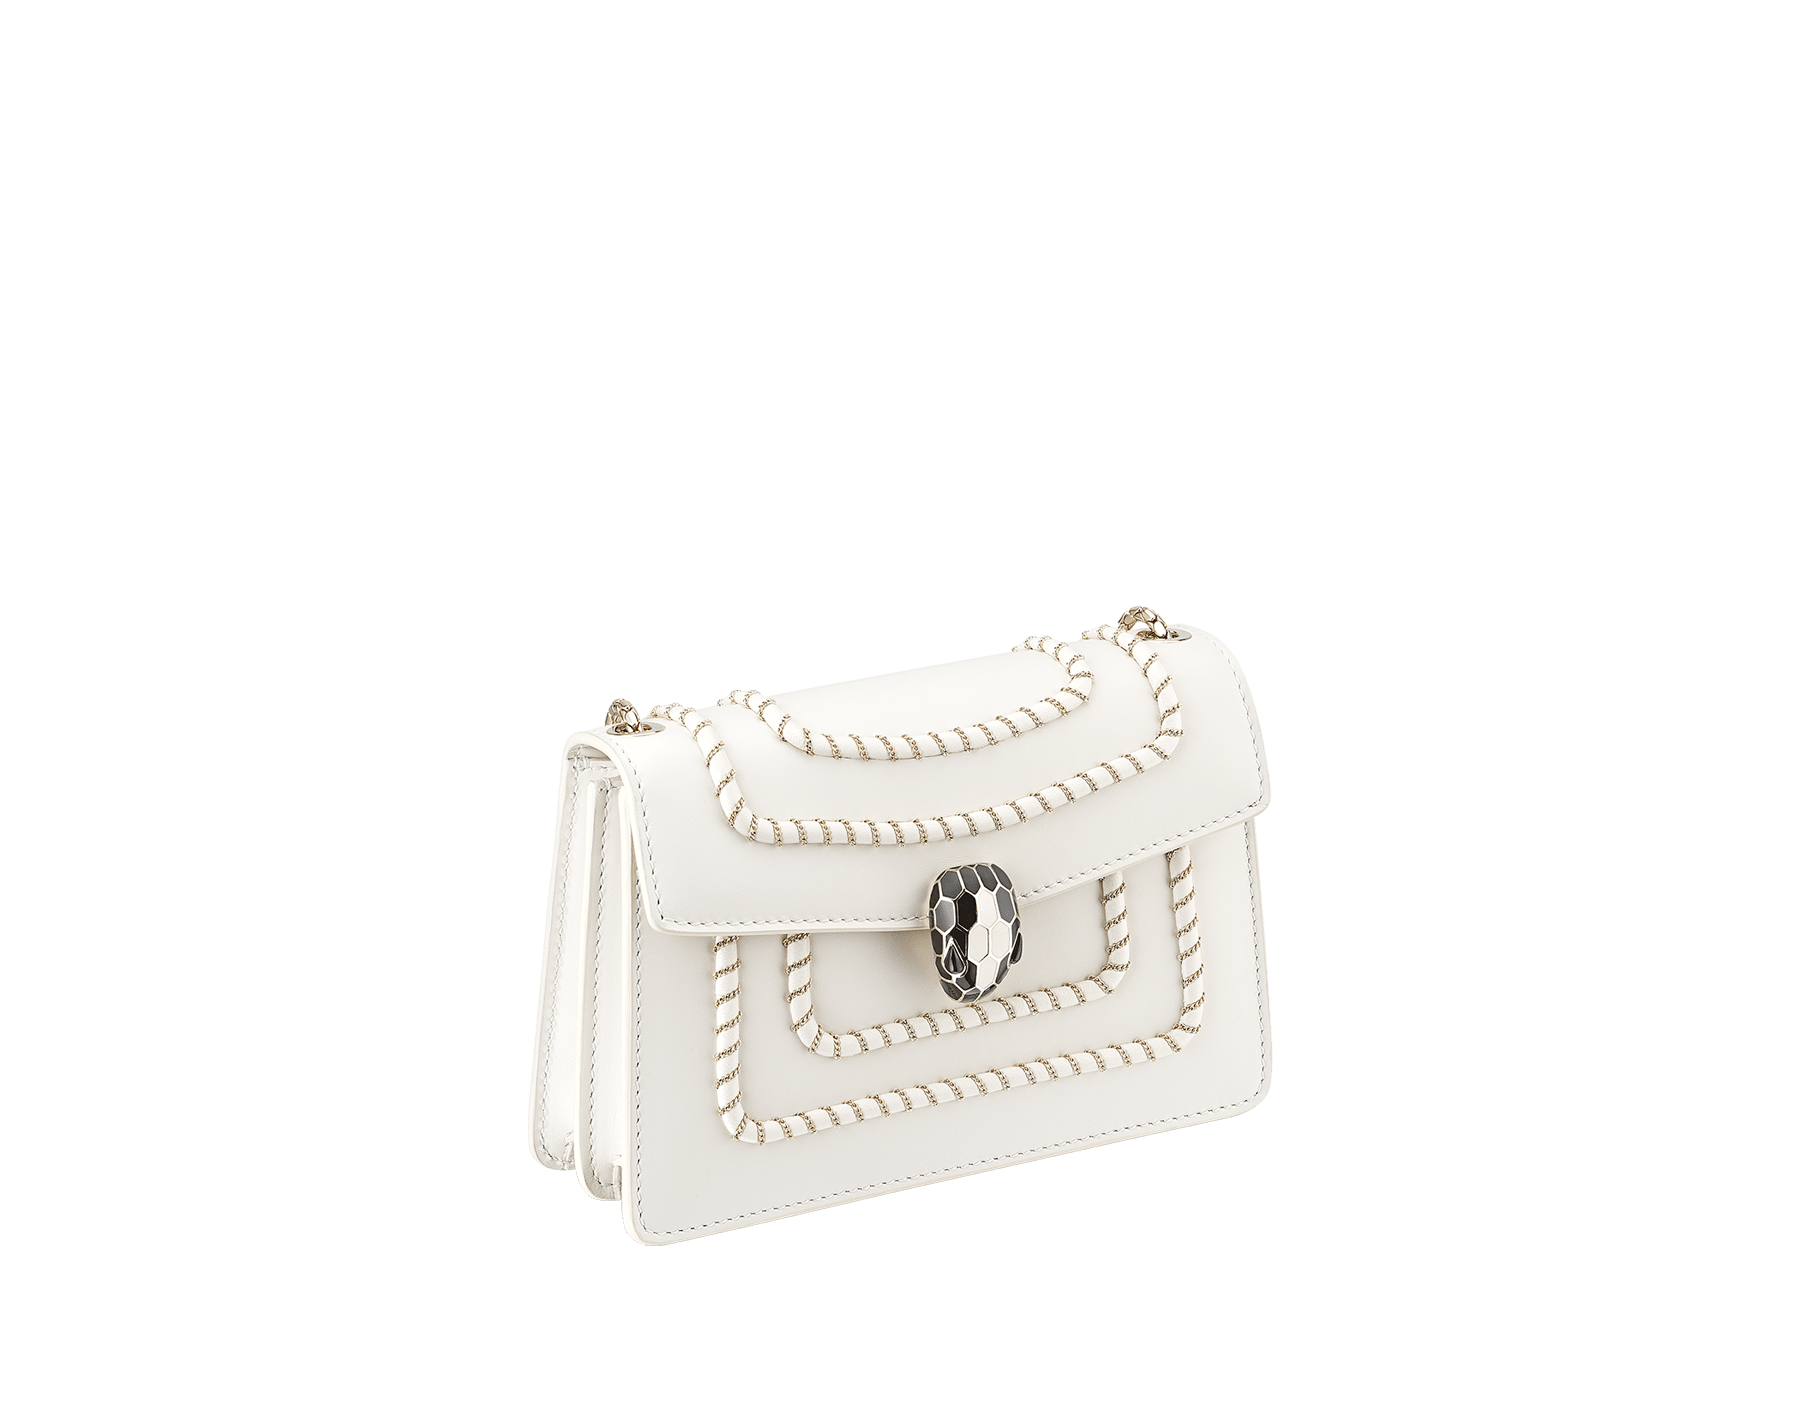 Serpenti Forever mini crossbody bag in white agate calf leather with woven chain décor. Brass light gold-plated snake head closure in black and white enamel, with black onyx eyes. 288045 image 2